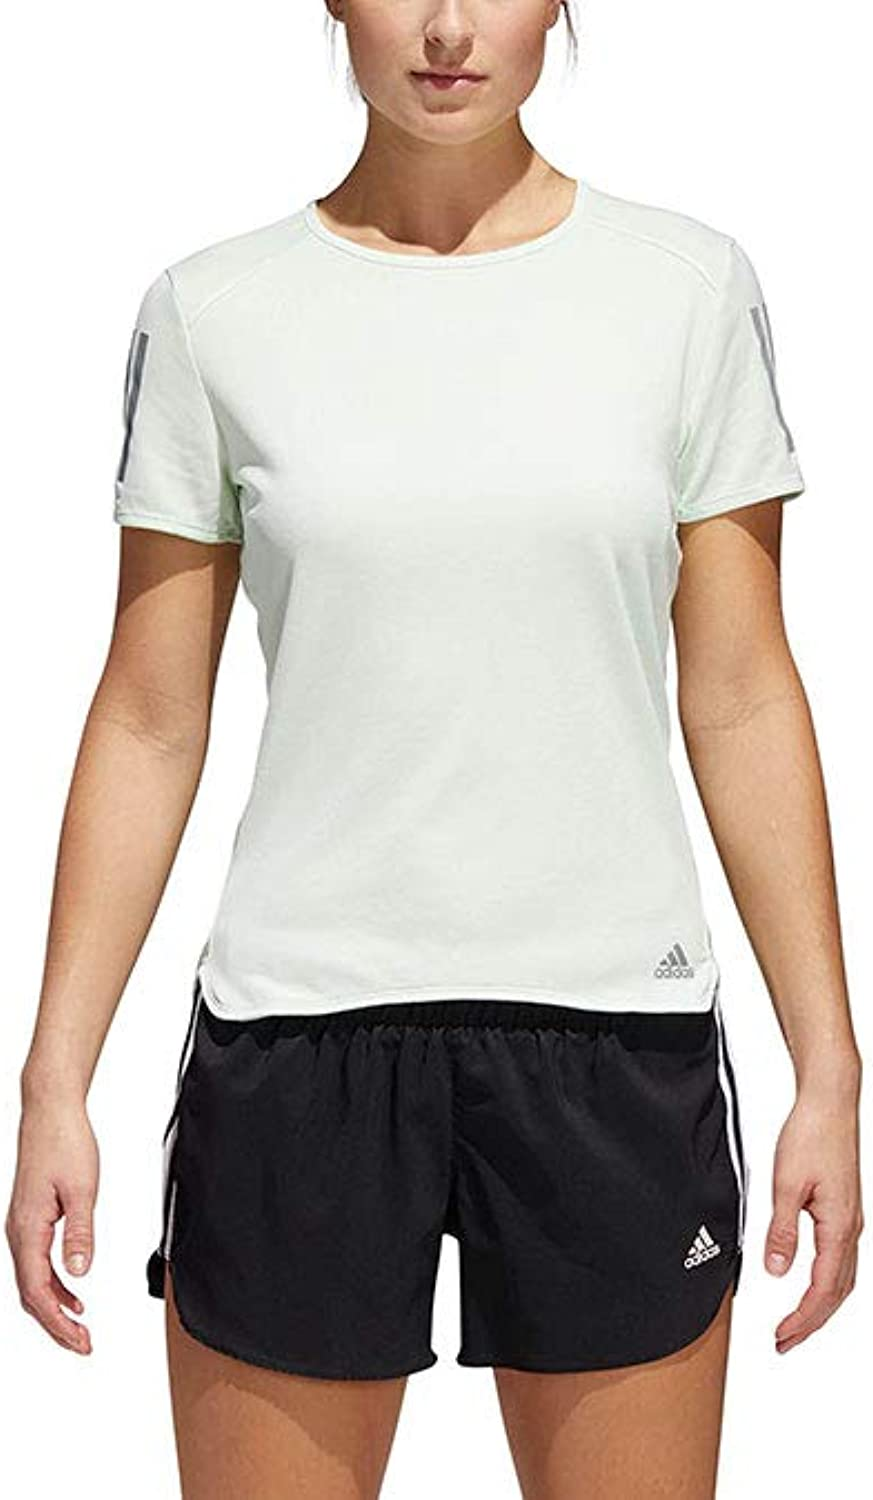 Adidas Women's Response Short Sleeve Tee Aero Green Small